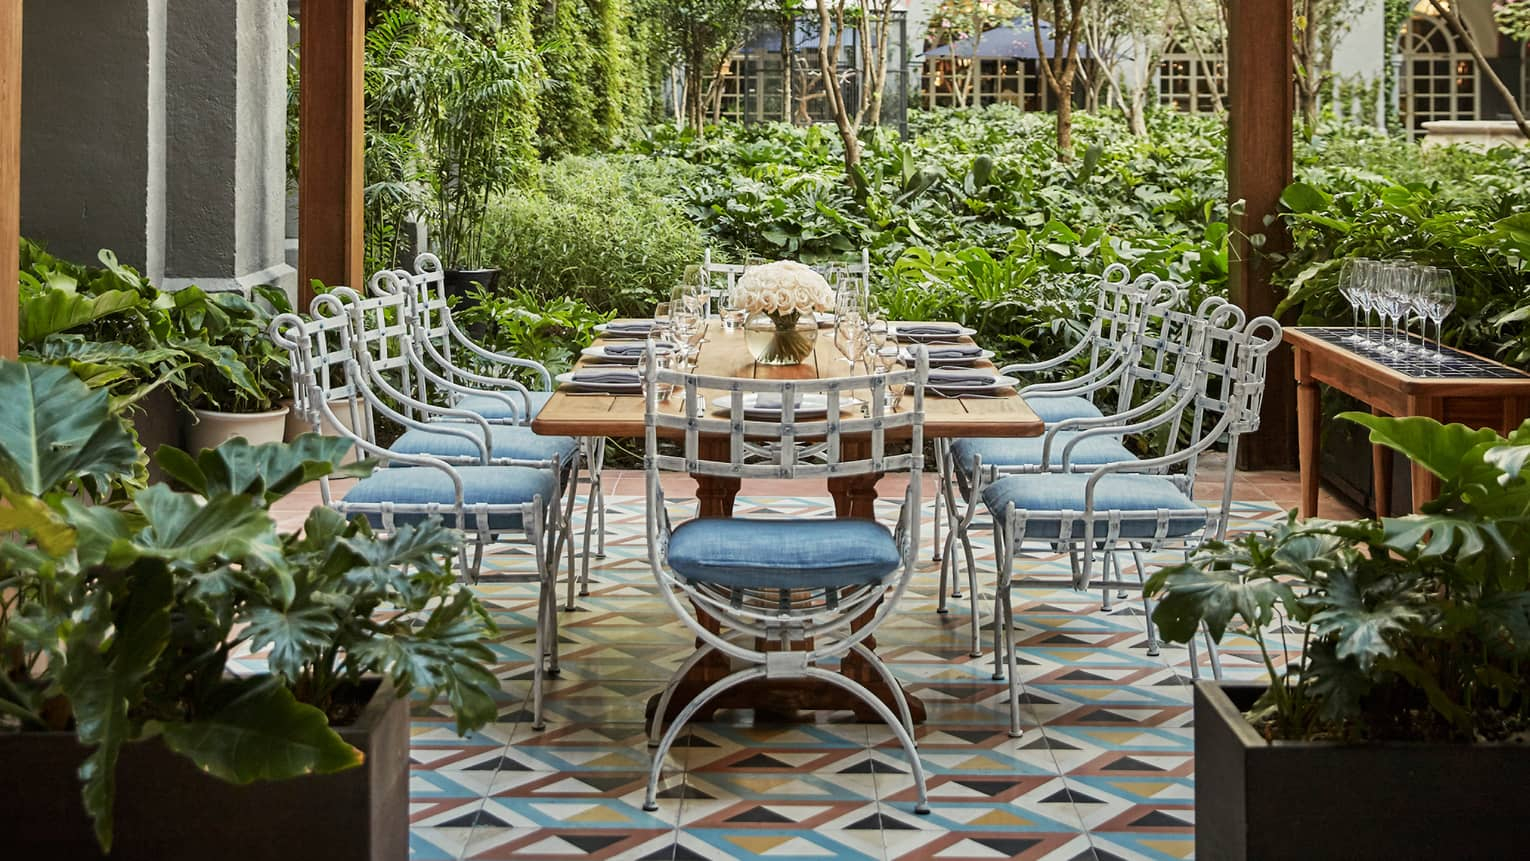 Long iron outdoor dining table, chairs with blue cushions on Zanaya garden patio